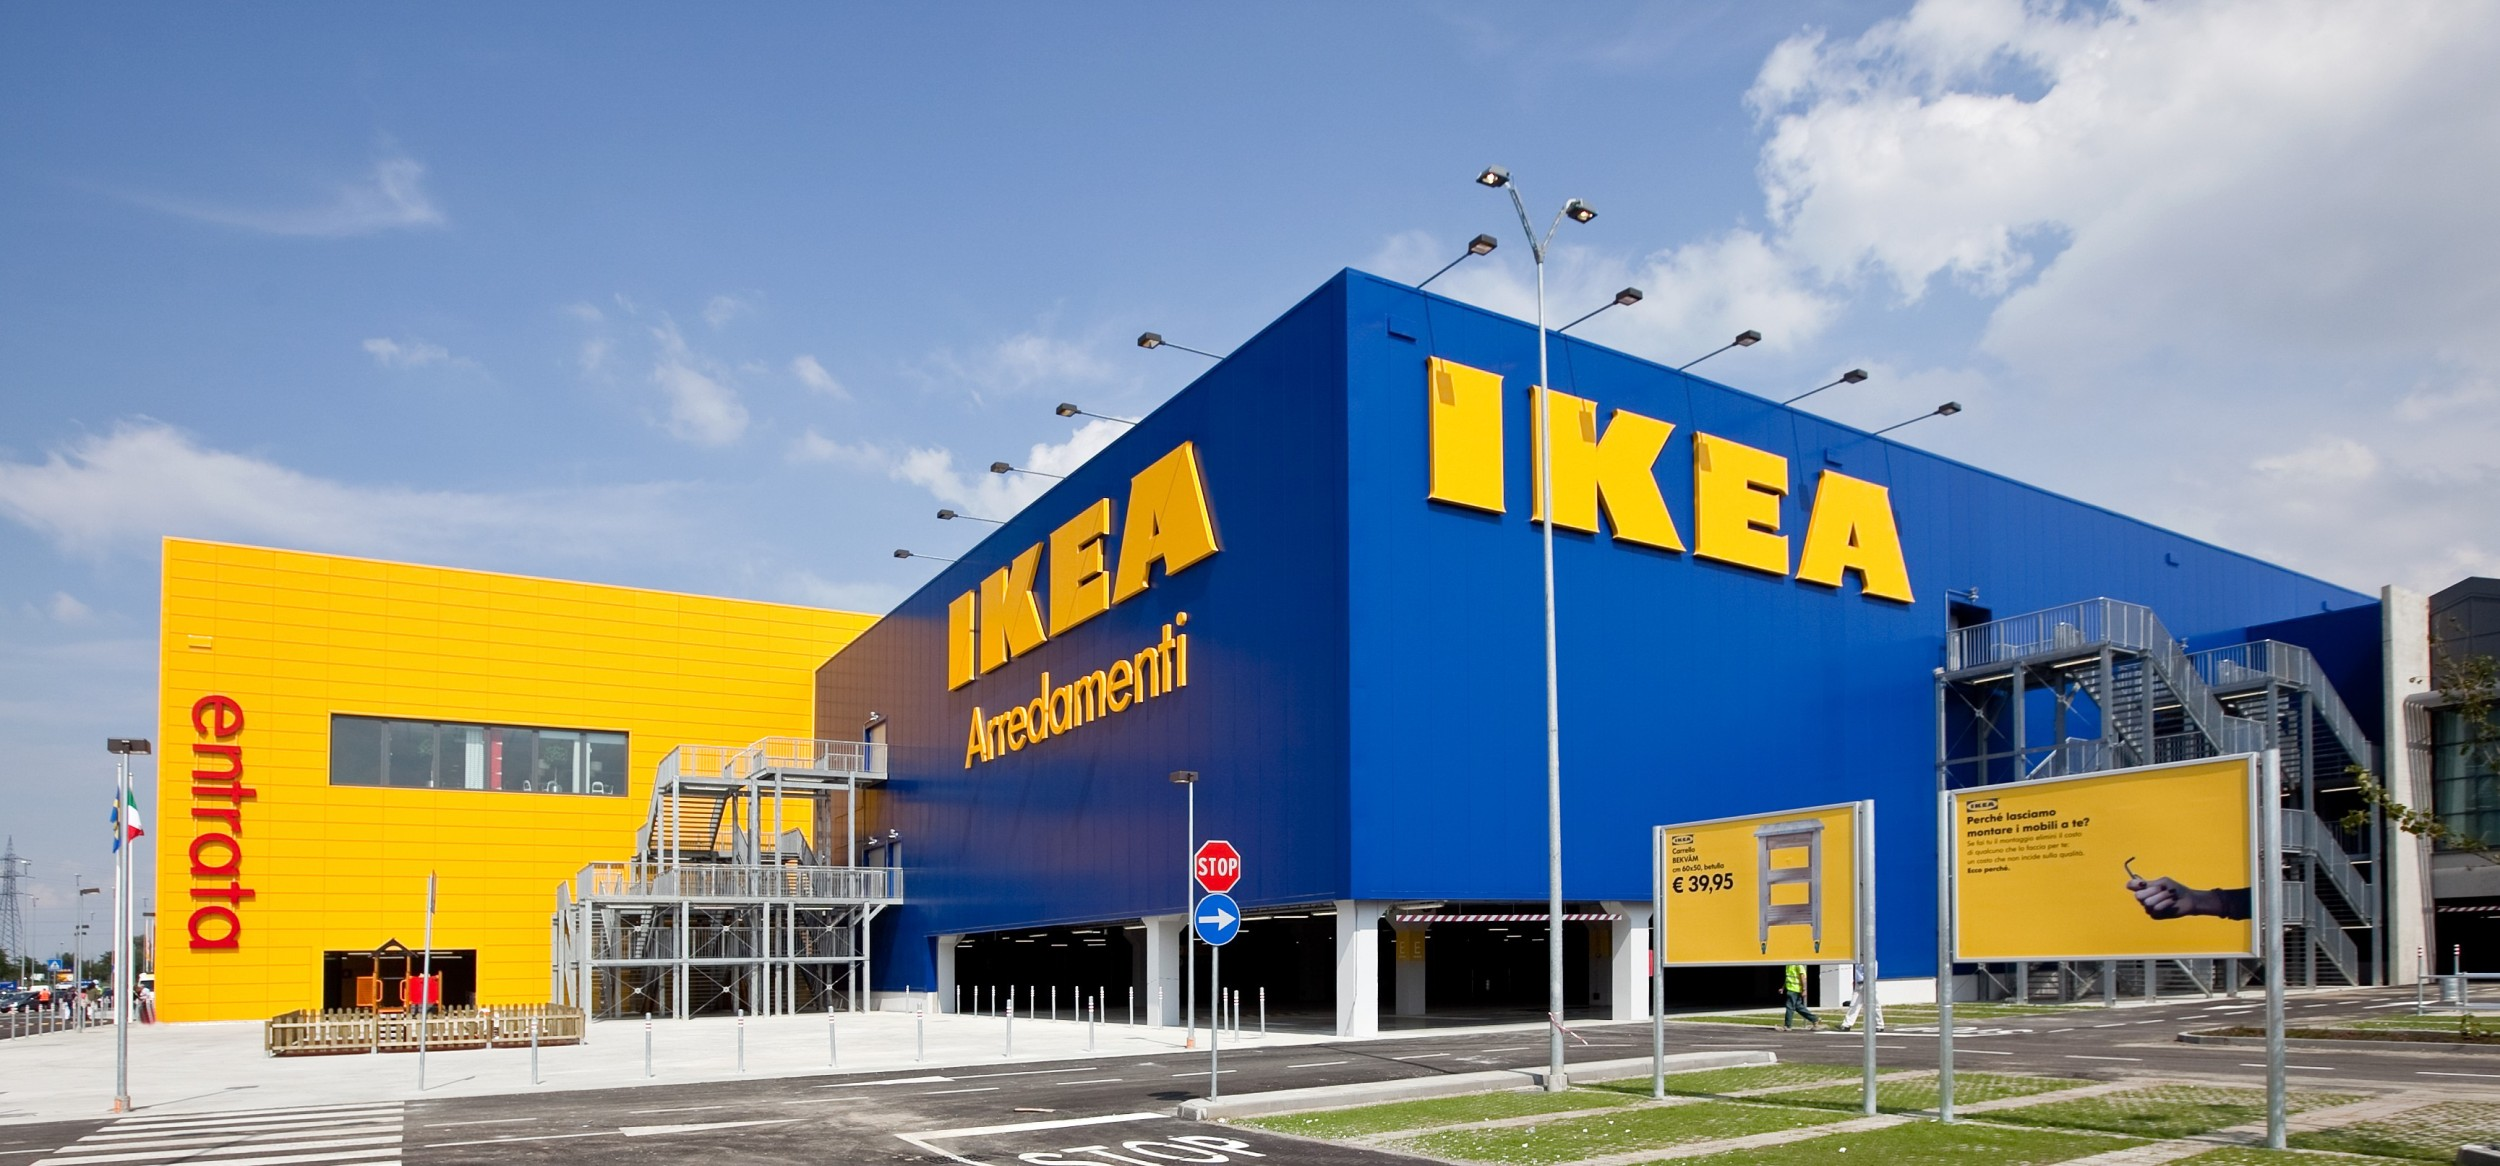 In November Forbes Named Ikea As The 40th Most Valuable Brand In The World In Their Annual List Ahead Of Other Household Name Powerhouses Such As Ebay